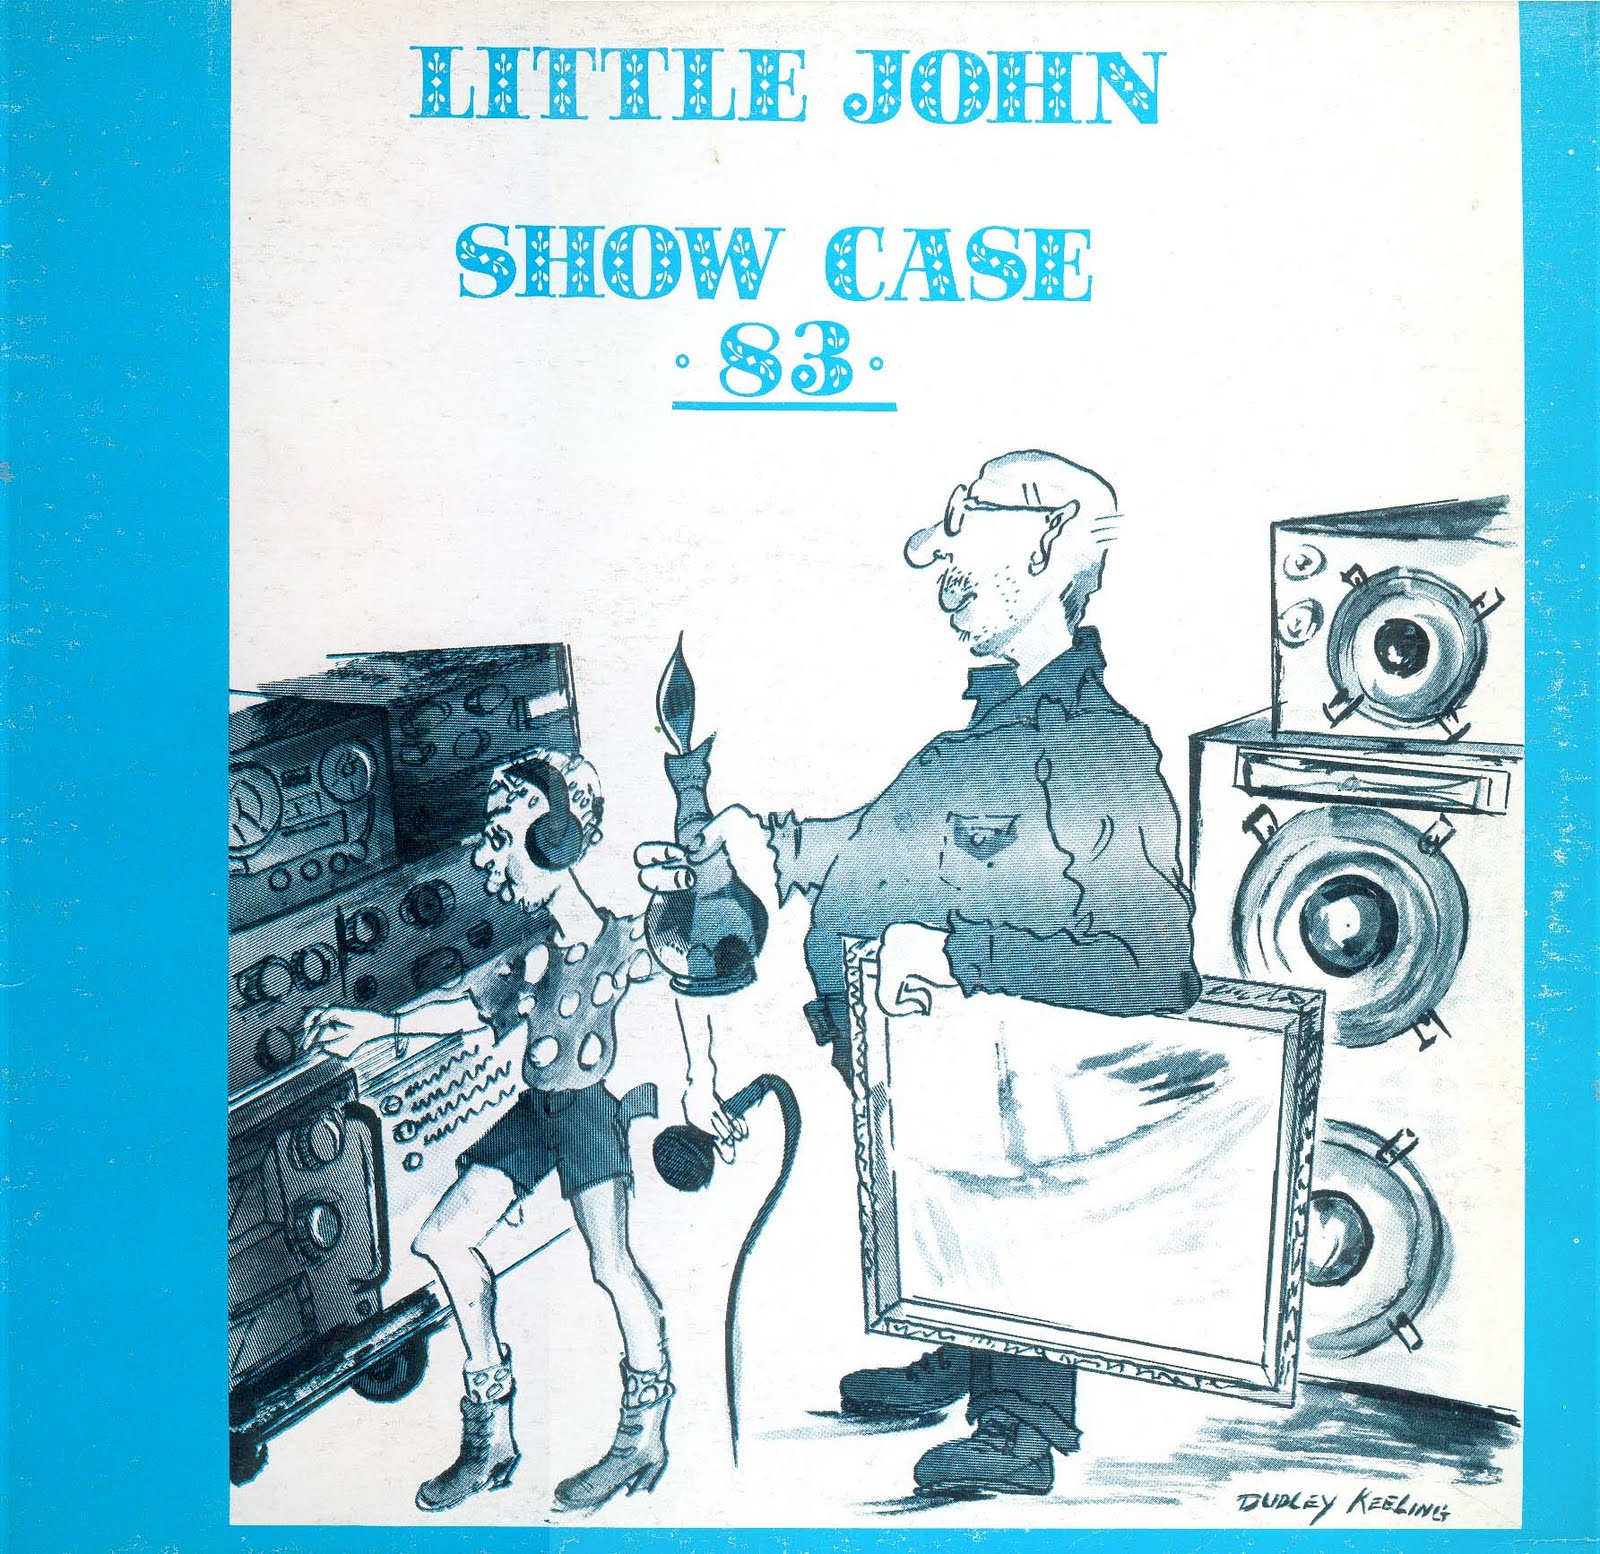 00-little_john-show_case83-lp-1983-front